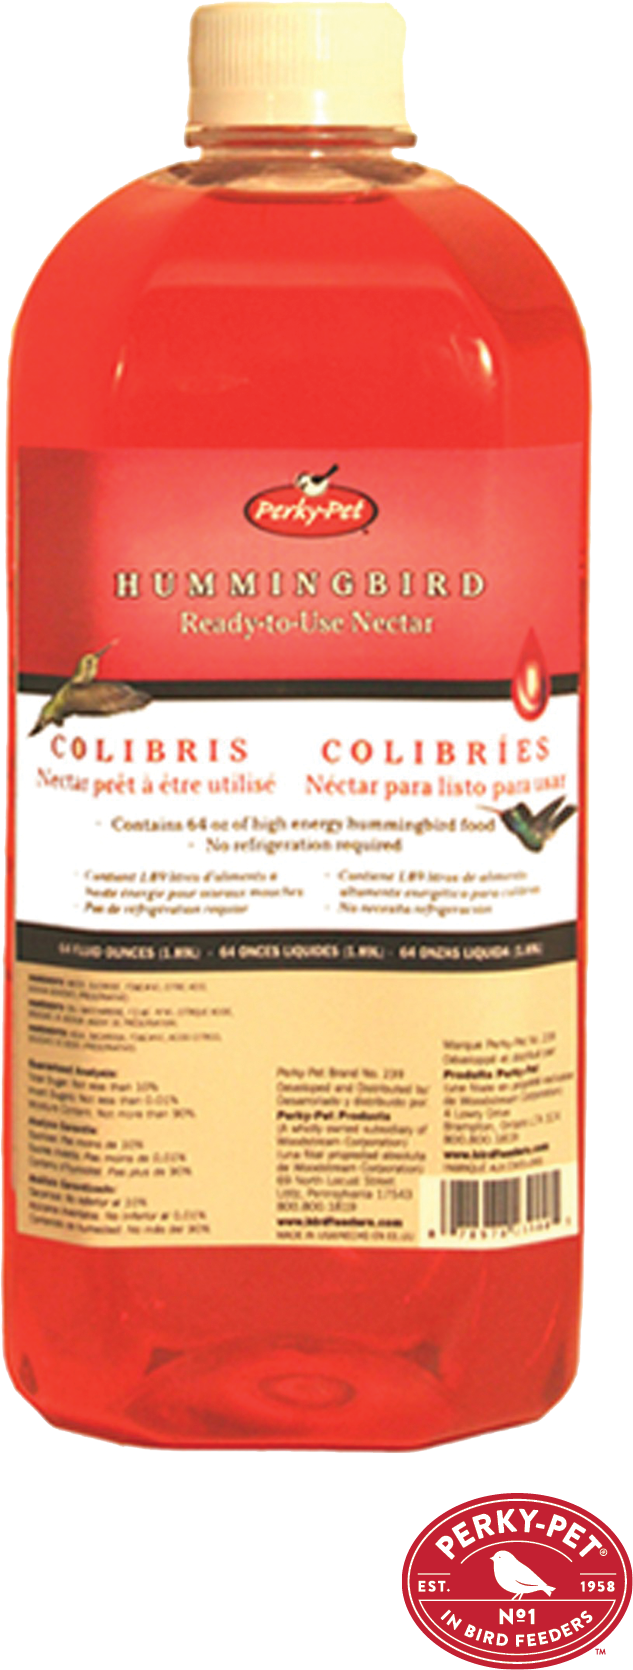 $5.99 - Hummingbird Bird Food No mixing required.  Simulates the nectar from flowers. No refrigeration required. (901197)